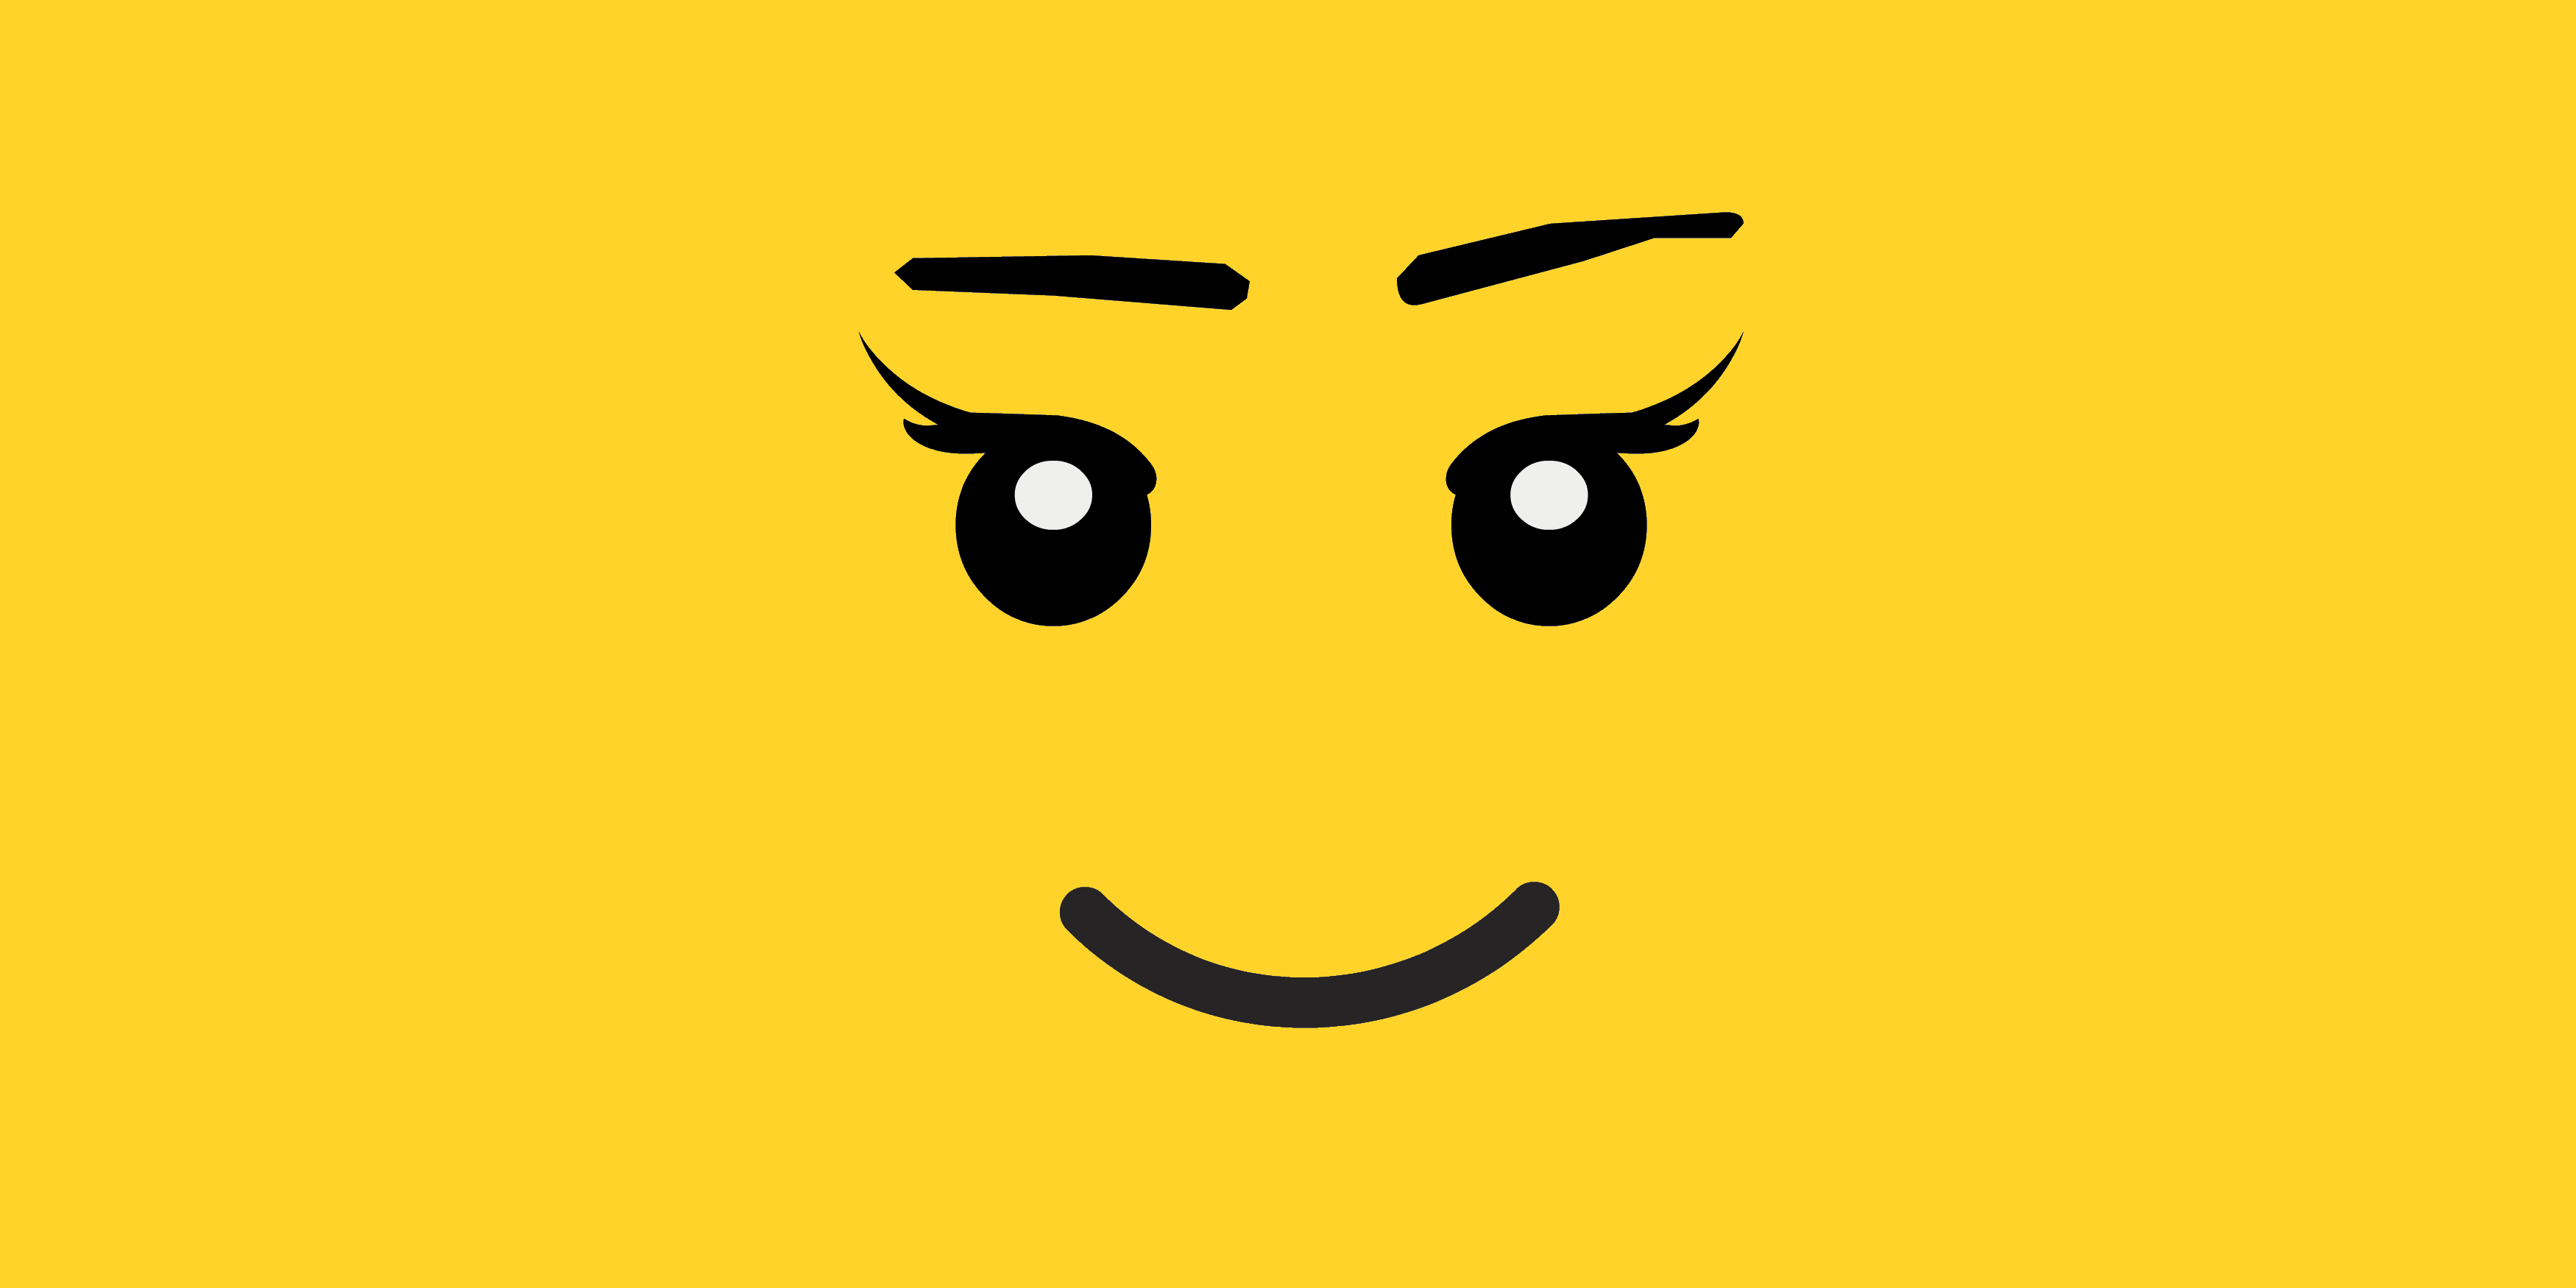 lego minifigure head template - the gallery for lego minifigure decal template